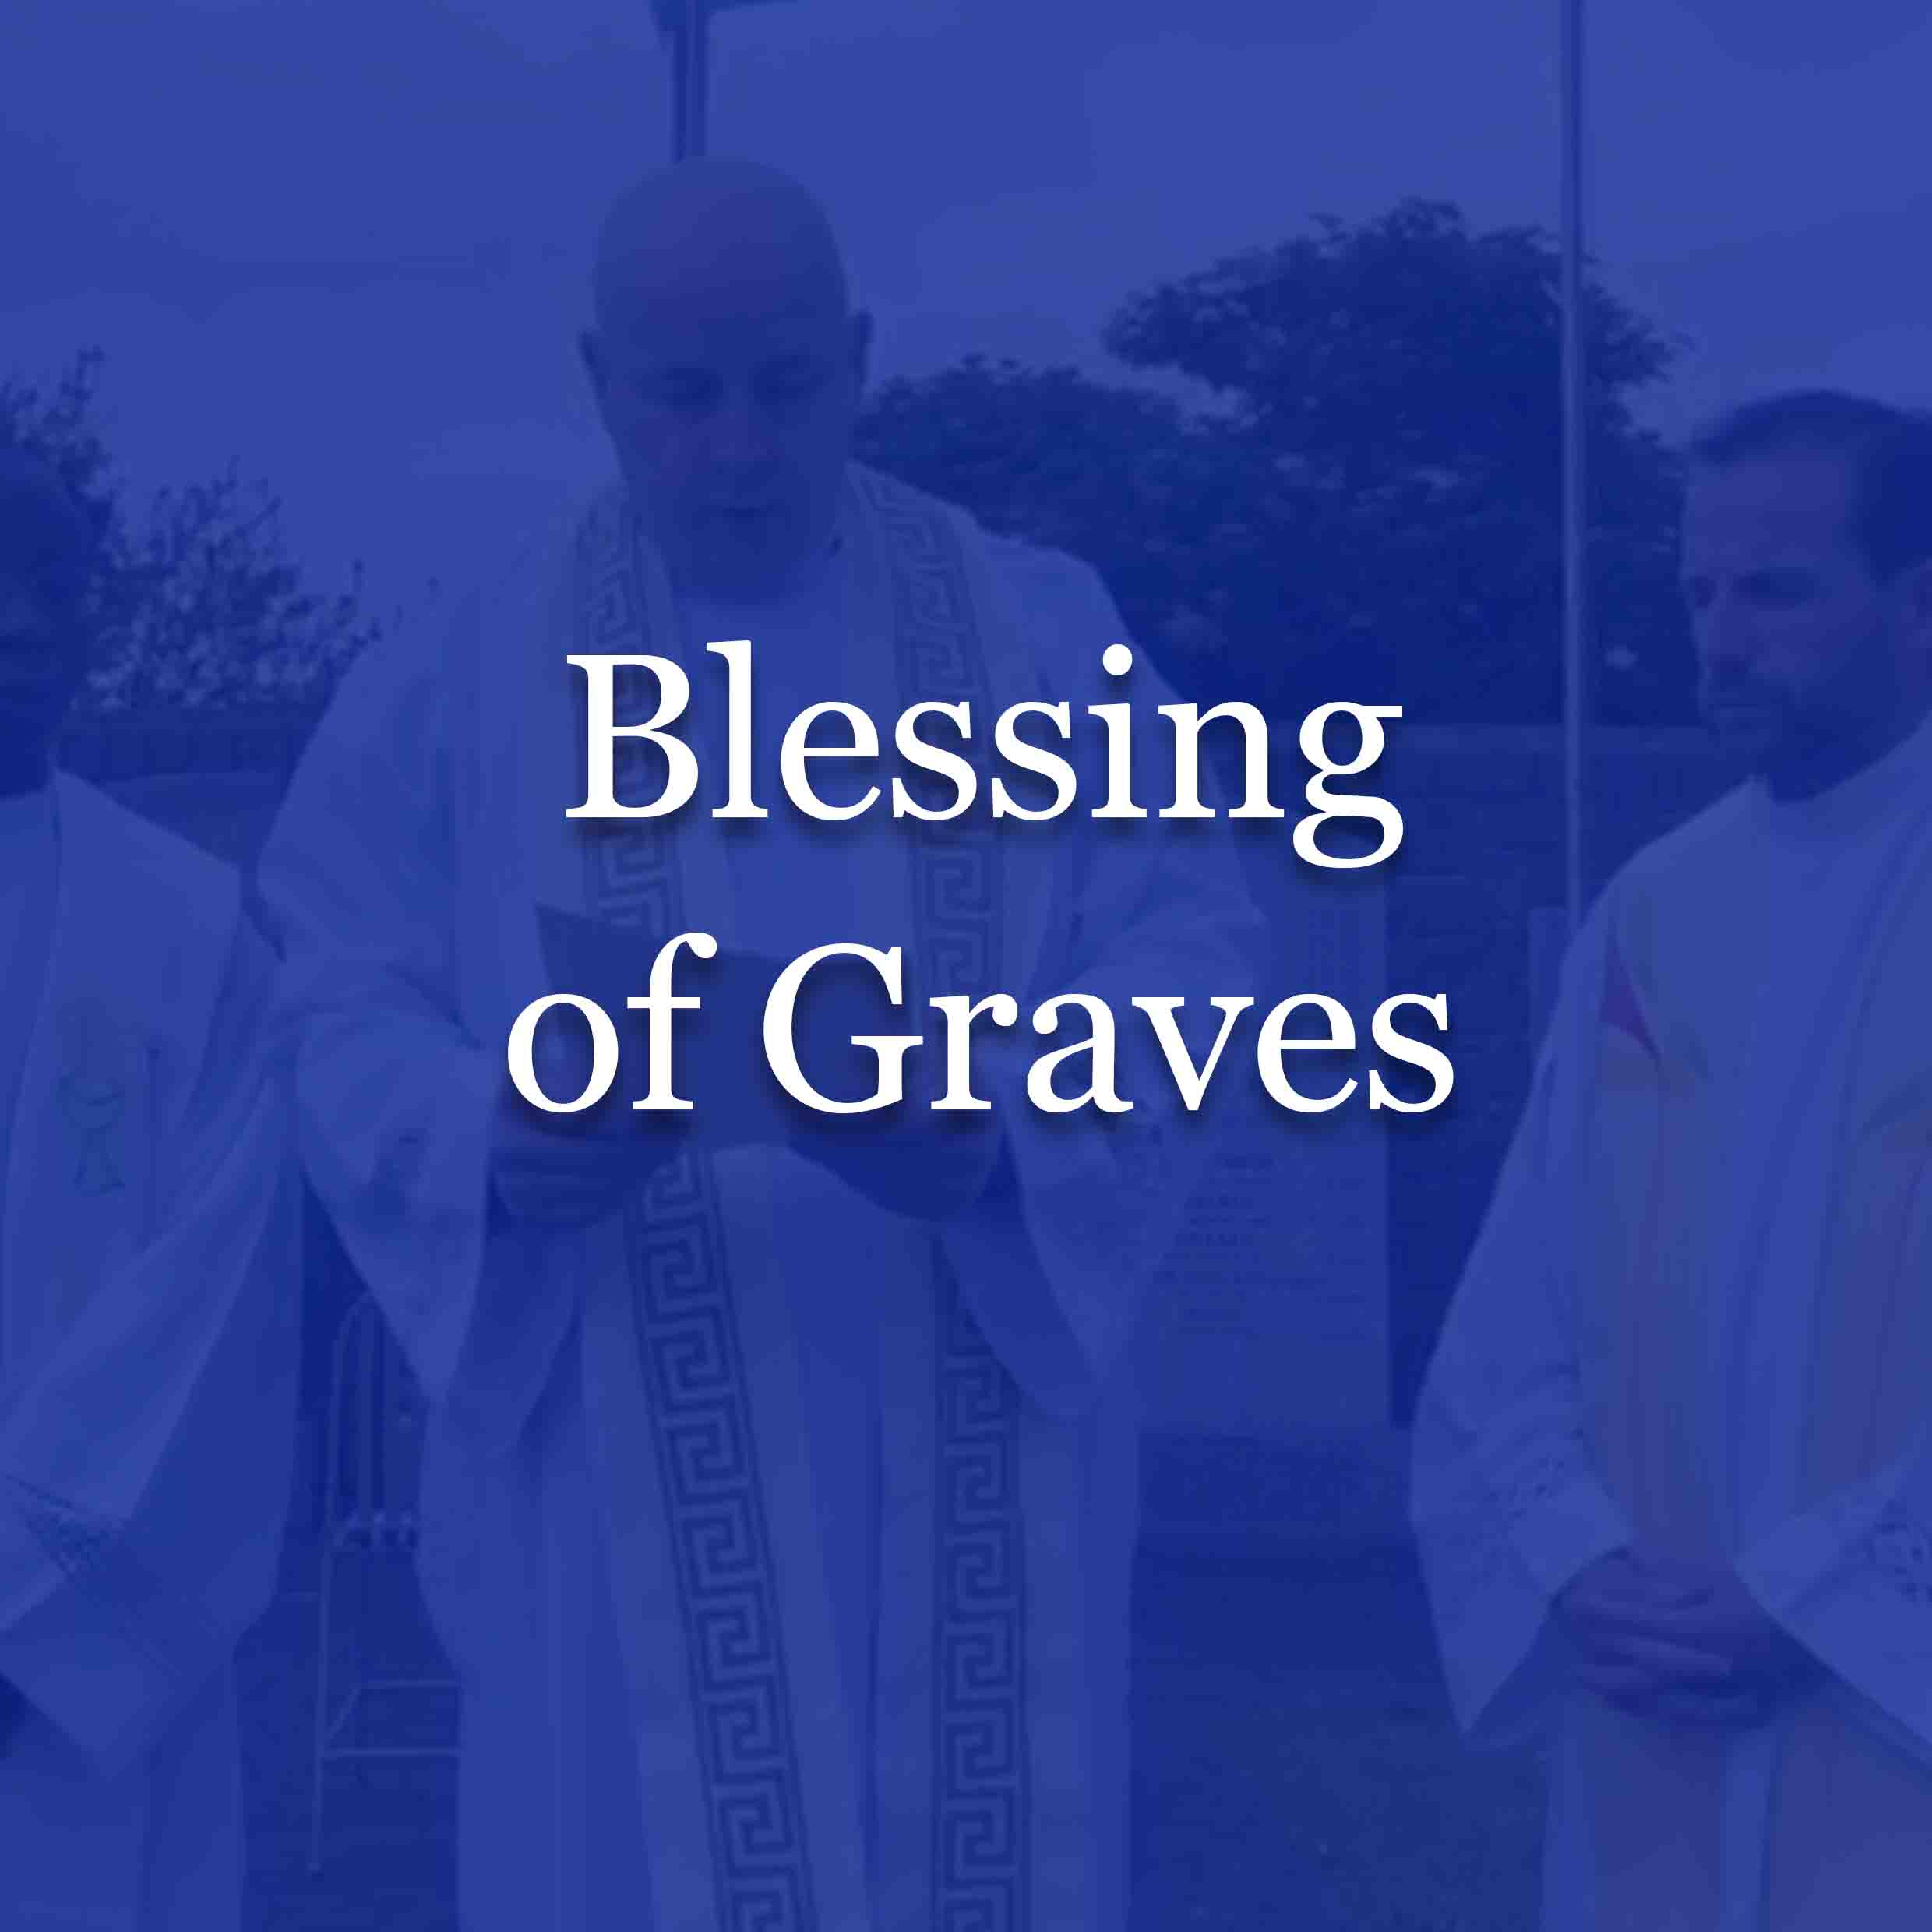 Blessing of Graves, St. Mary's Parish Athlone